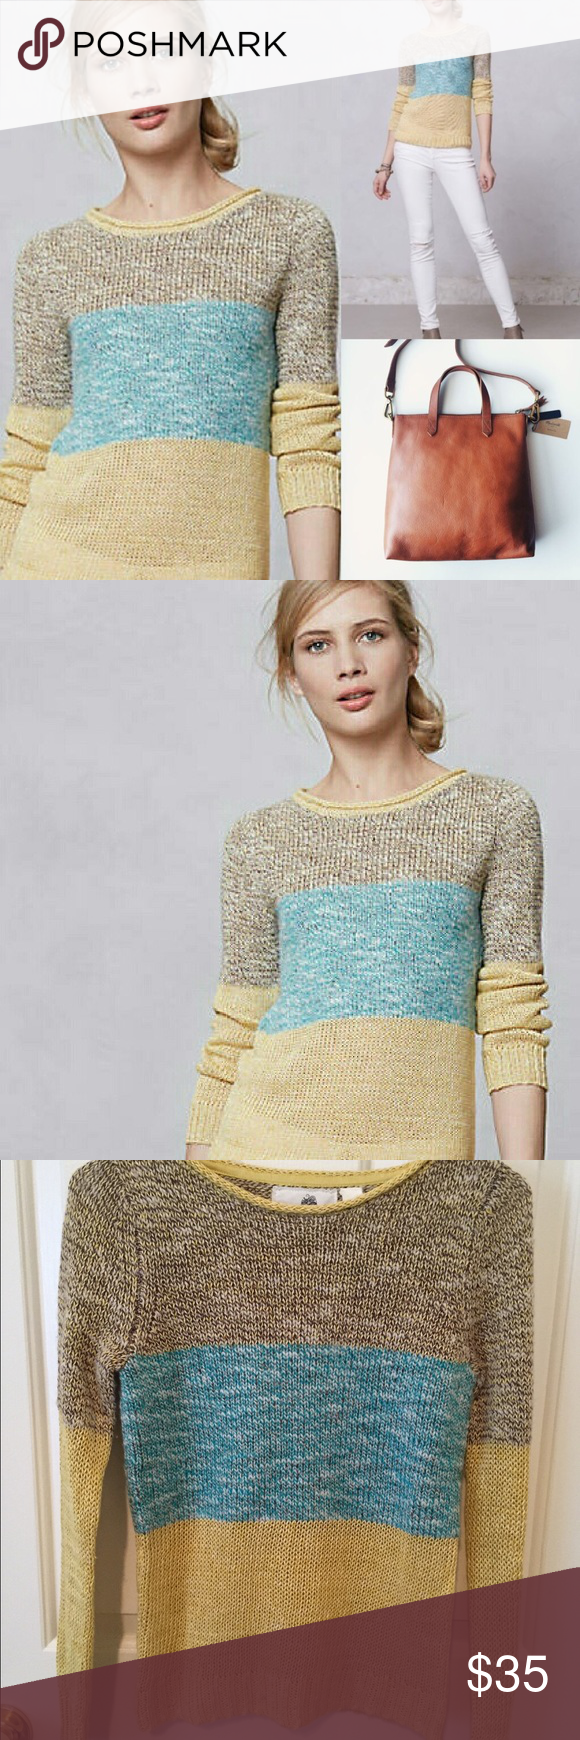 Colorful Anthropologie Sunk daffodil pullover Multi color Colorblock pullover from Anthropologie by Giuliana Elena. Gently loved. Perfect for spring!! Size xs. 🙆🏻no trades or off site transactions. 🙅🏻Low ball offers will be denied. 💁🏻I believe my prices are already low enough and are very fair. I do have an illness 😷 & 2 little ones 👶🏻 so if I don't respond I'm either very ill that day 🚑 or have been kidnapped by my children🙍🏻Thank you for shopping my closet💋 Anthropologie…